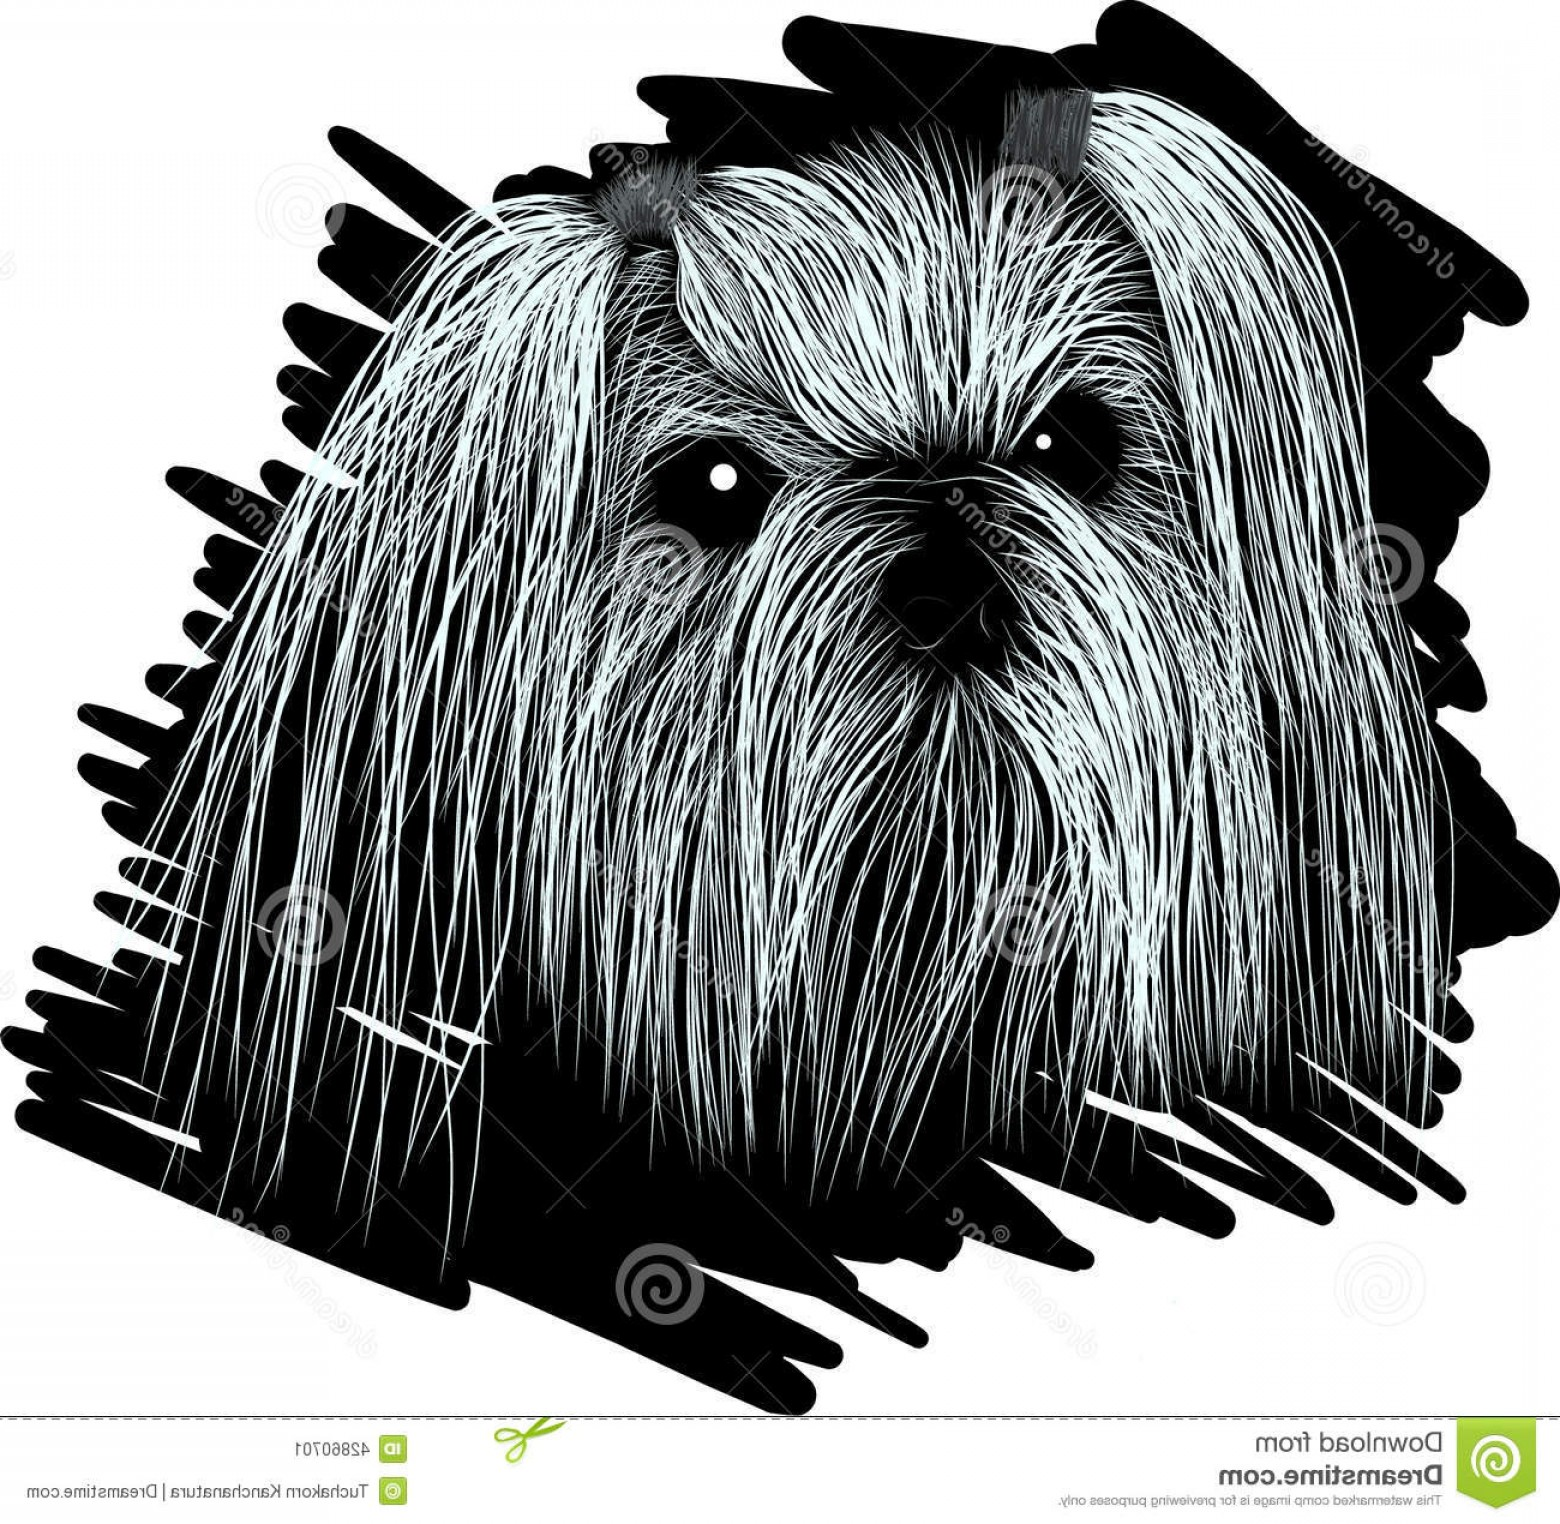 Shih Tzu Clipart-Vector: Stock Illustration Portrait Dog Shih Tzu Sketch Chinese Breed Image